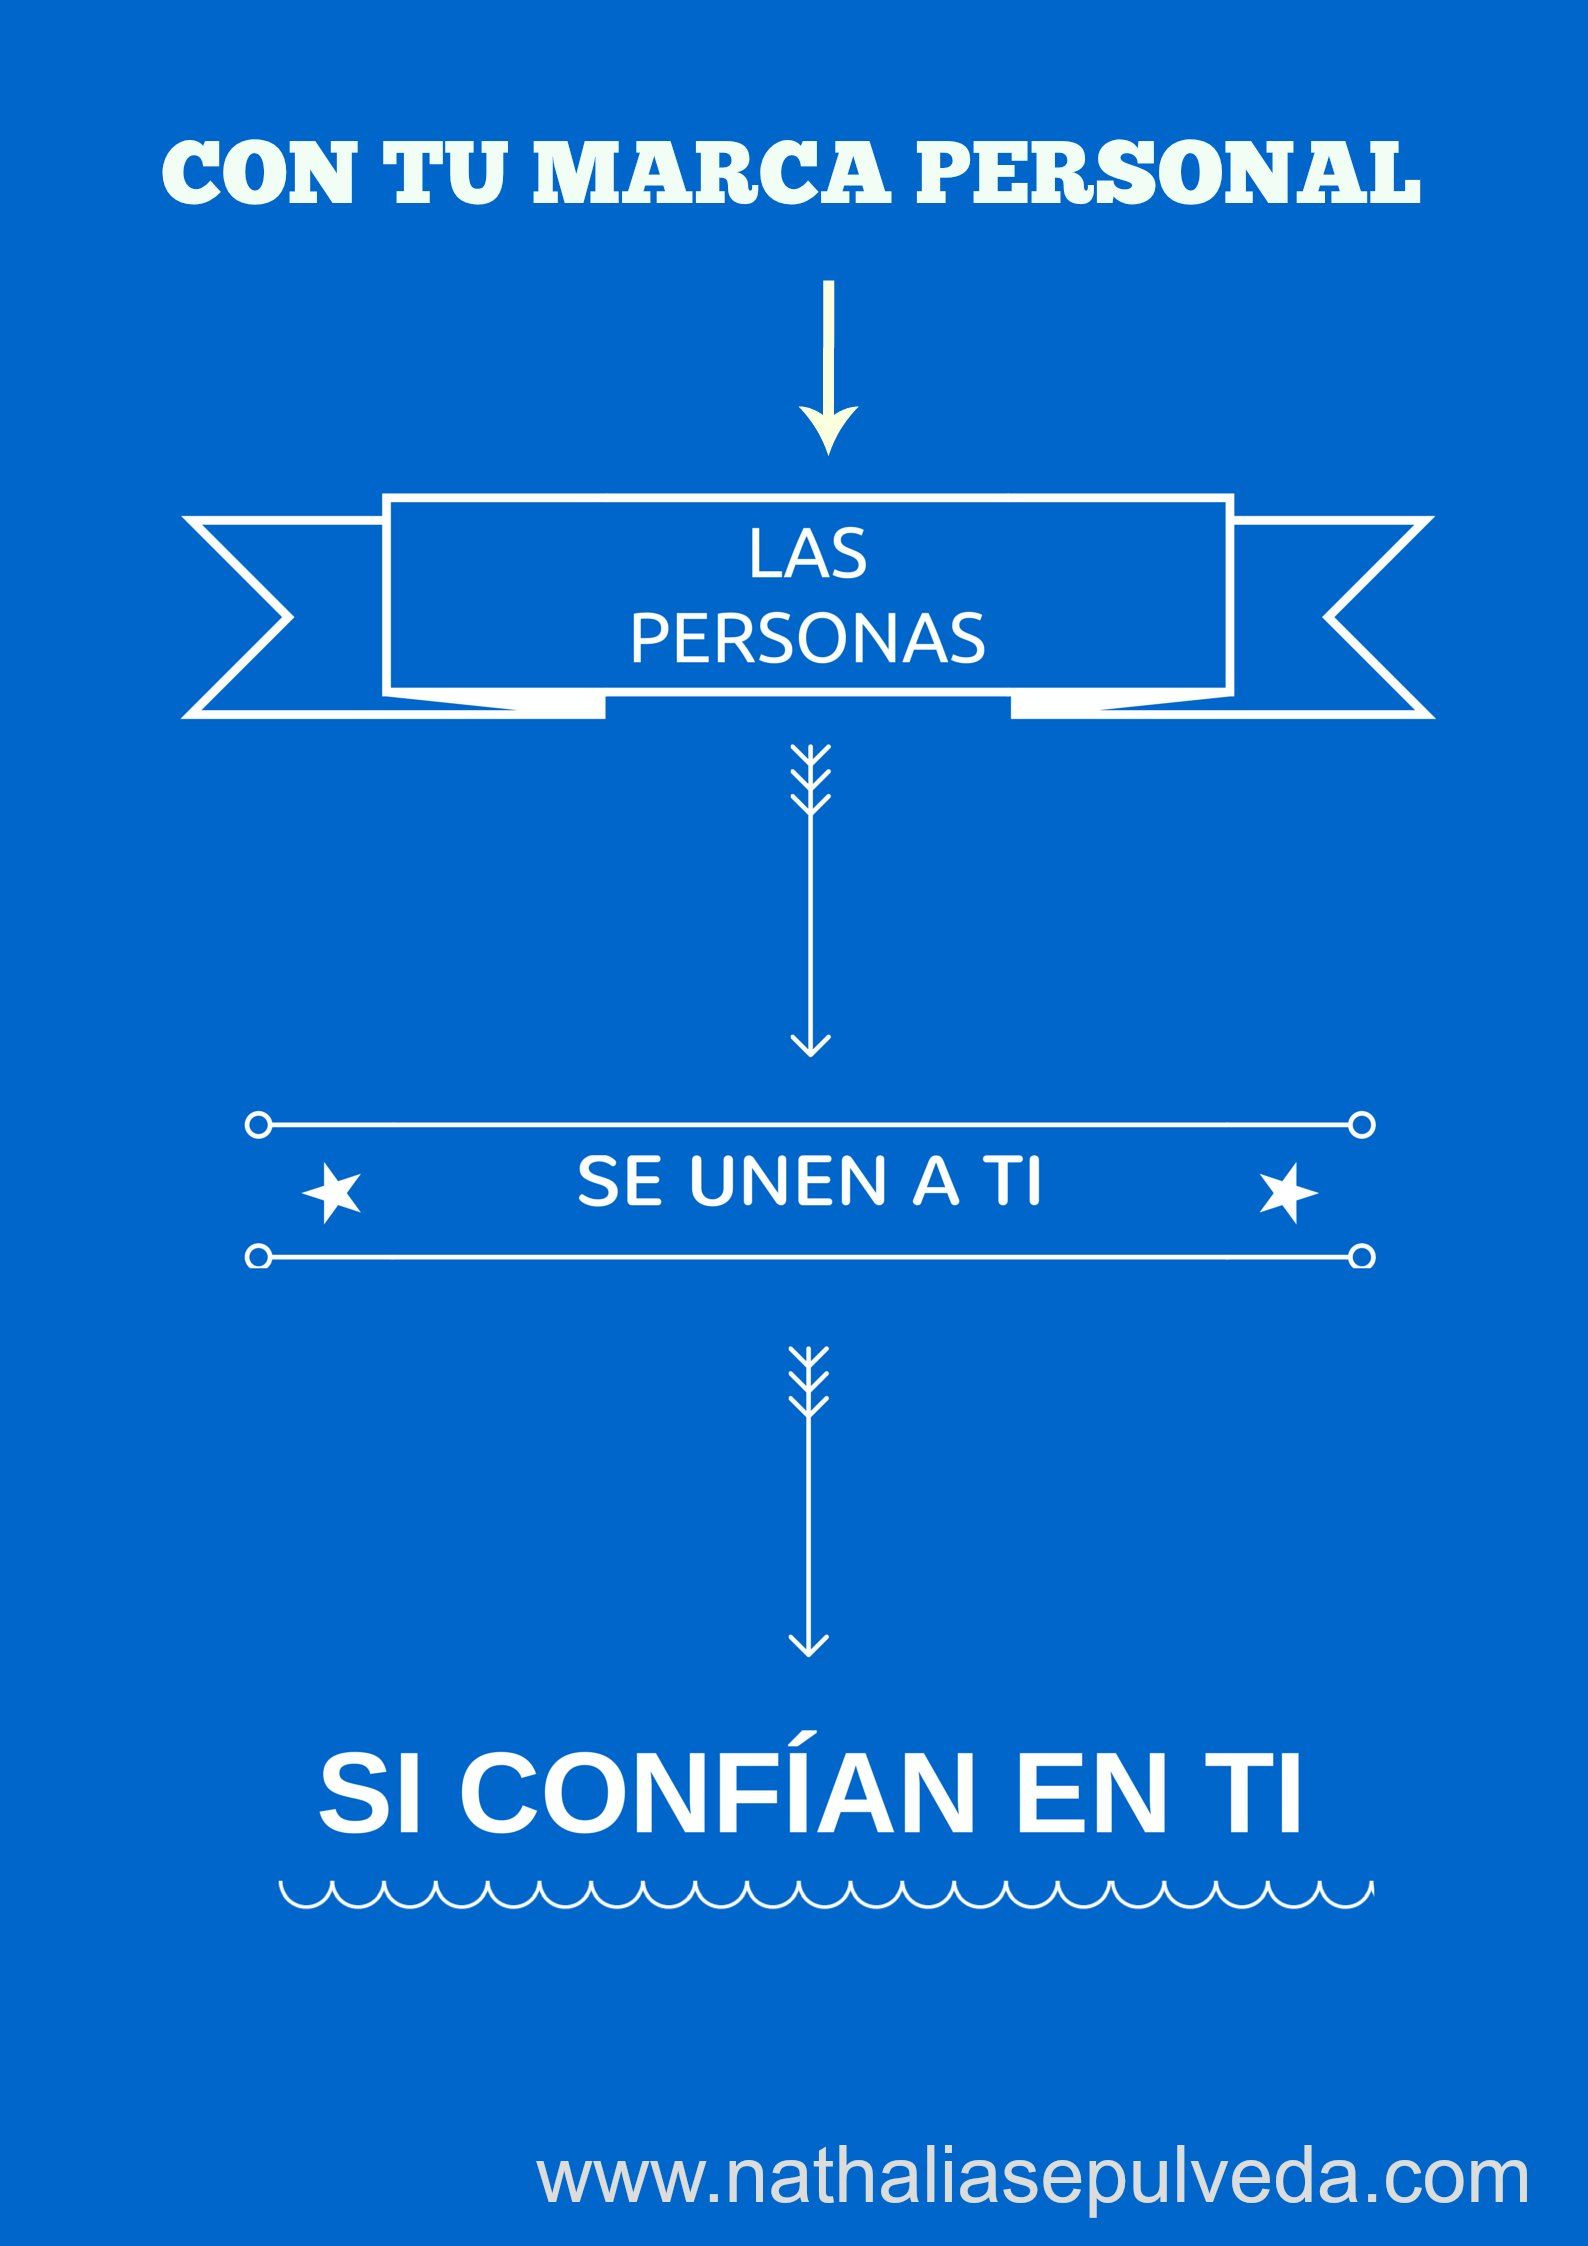 Las personas se unen a personas no a compañias, por lo tanto es necesario cuidar lo que decimos y hacemos de eso depende nuestra imagen.   Si deseas recibir mas información sobre marketing online, y Marketing Multinivel suscribete COMPLETAMENTE GRATIS. bit.ly/1kmXuRH  #MarcaPersonal #MarketingOnline #NegociosOnline #MarketingMultinivel